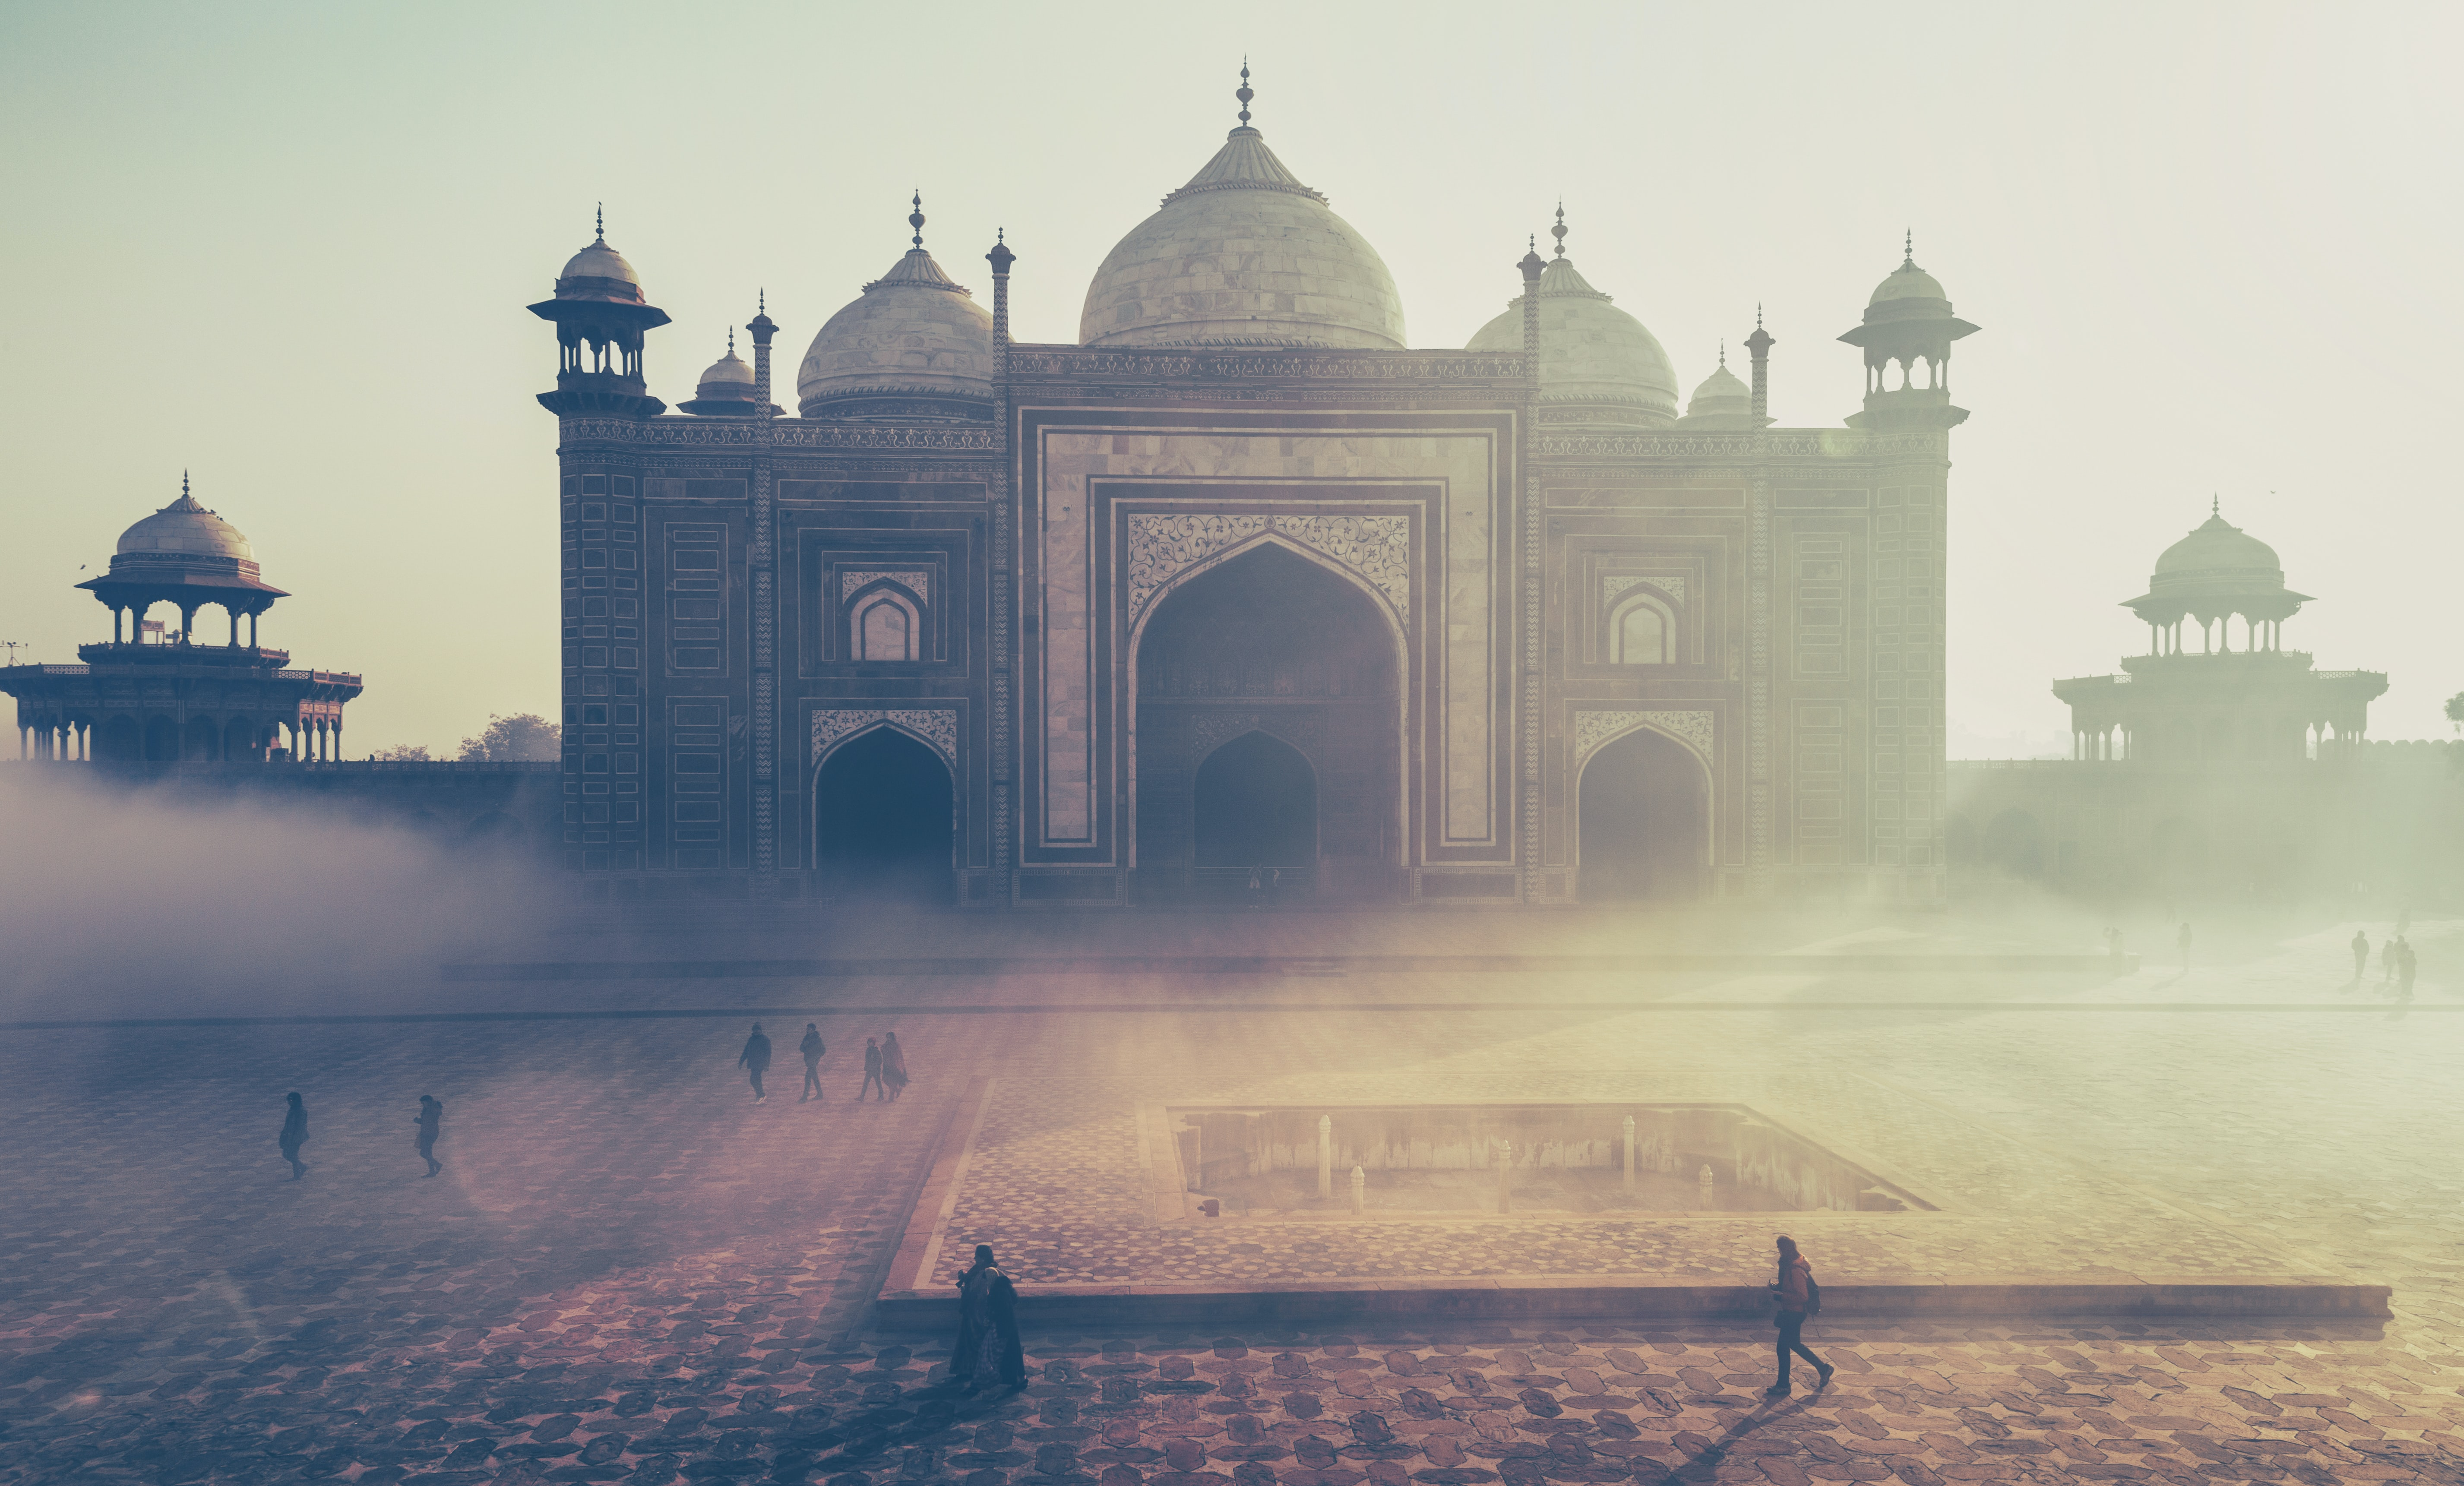 Tourist walk past ornate temples and architecture in Agra